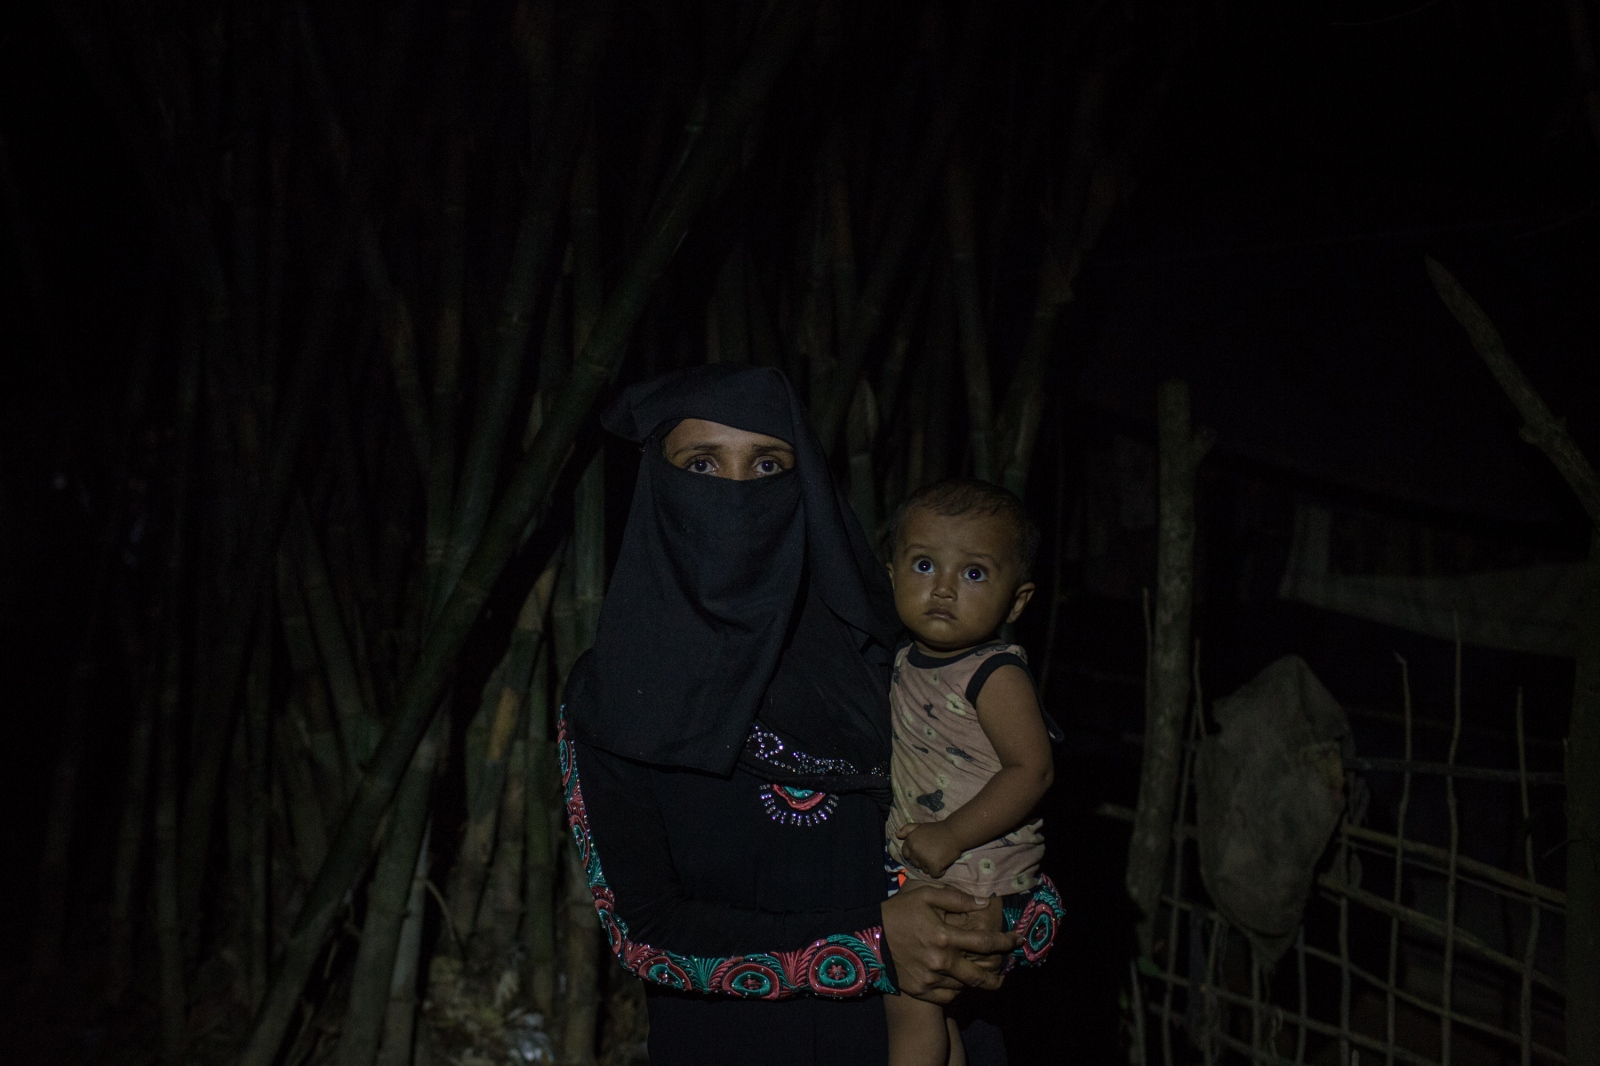 Settera, 30, waits with her baby by the side of the road for food and cash distributions near the Balukhali refugee camp in Bangladesh on Friday September 22, 2017. Her husband was shot and killed by the Burmese Army and her house burned when they entered her village in the Maungdaw.